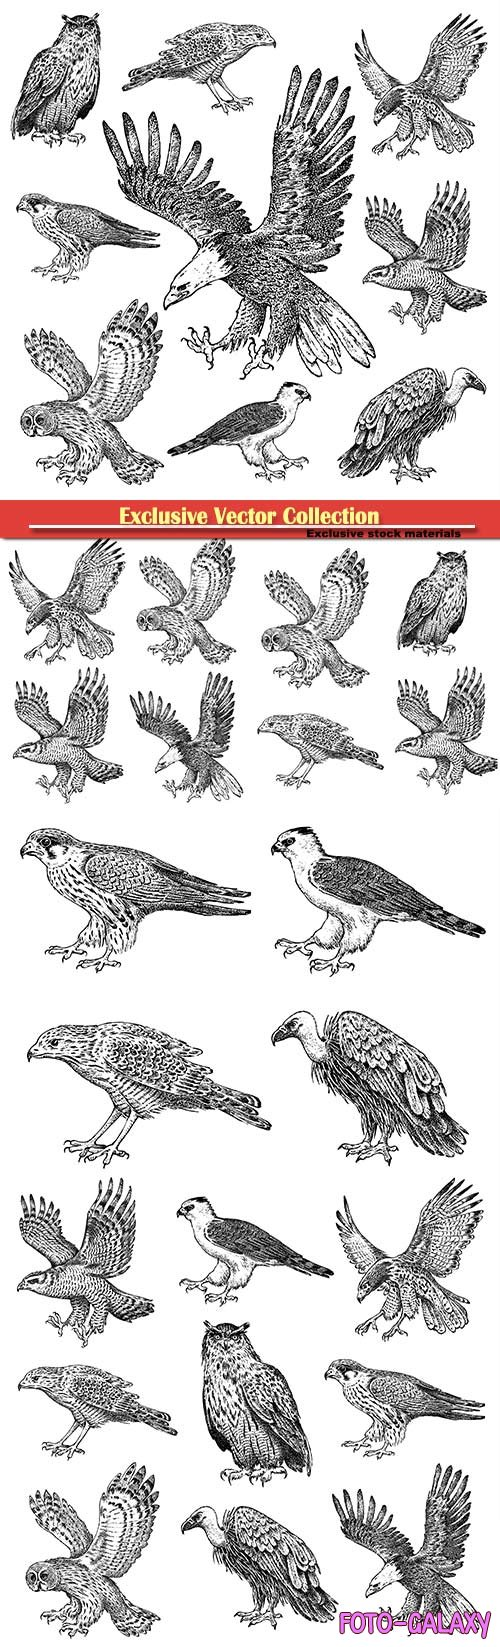 Vector drawn birds, owl, eagle, hawk